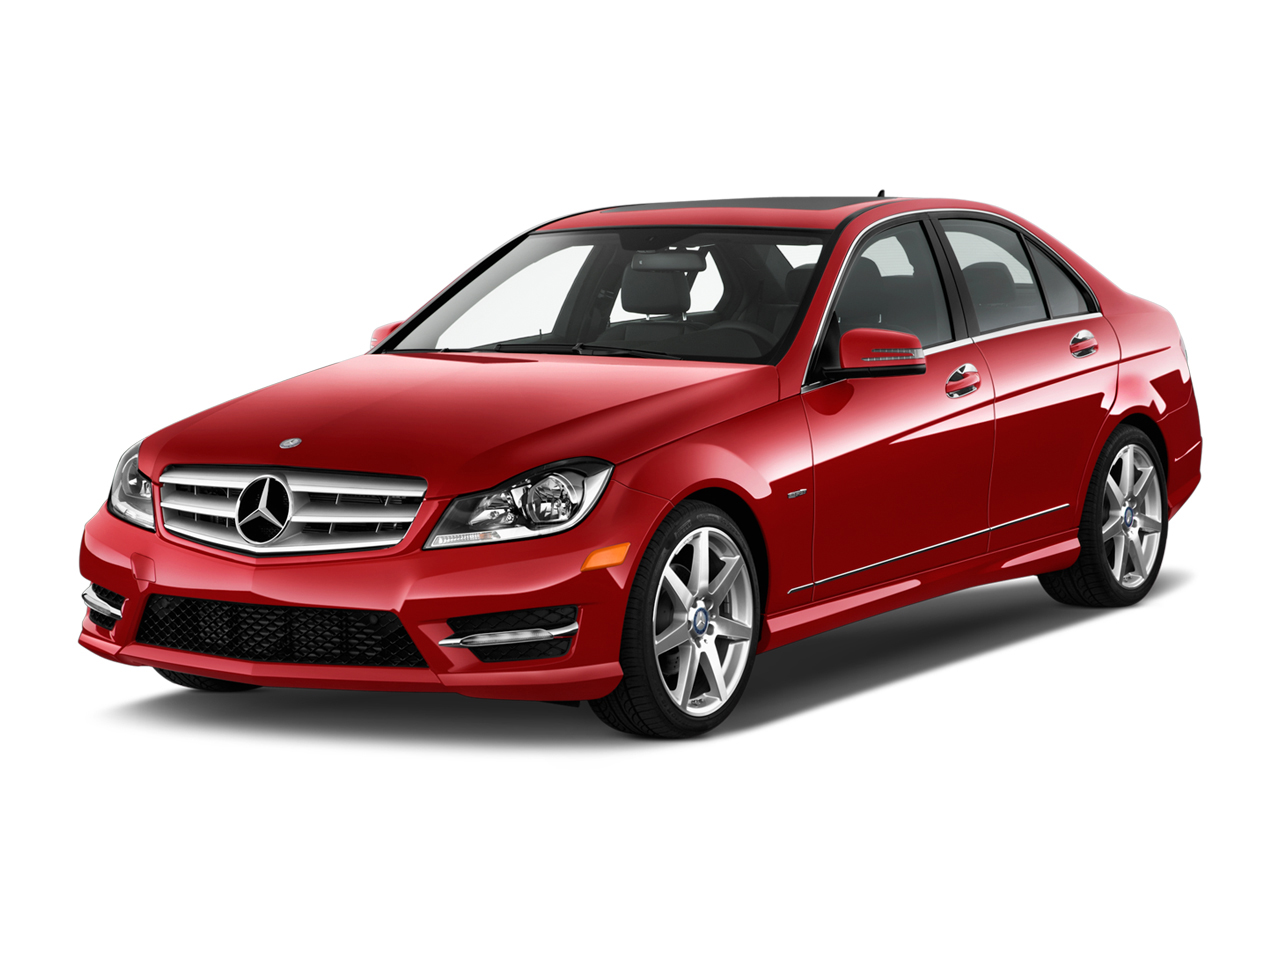 2013 mercedes benz c class review ratings specs prices for Mercedes benz sedans